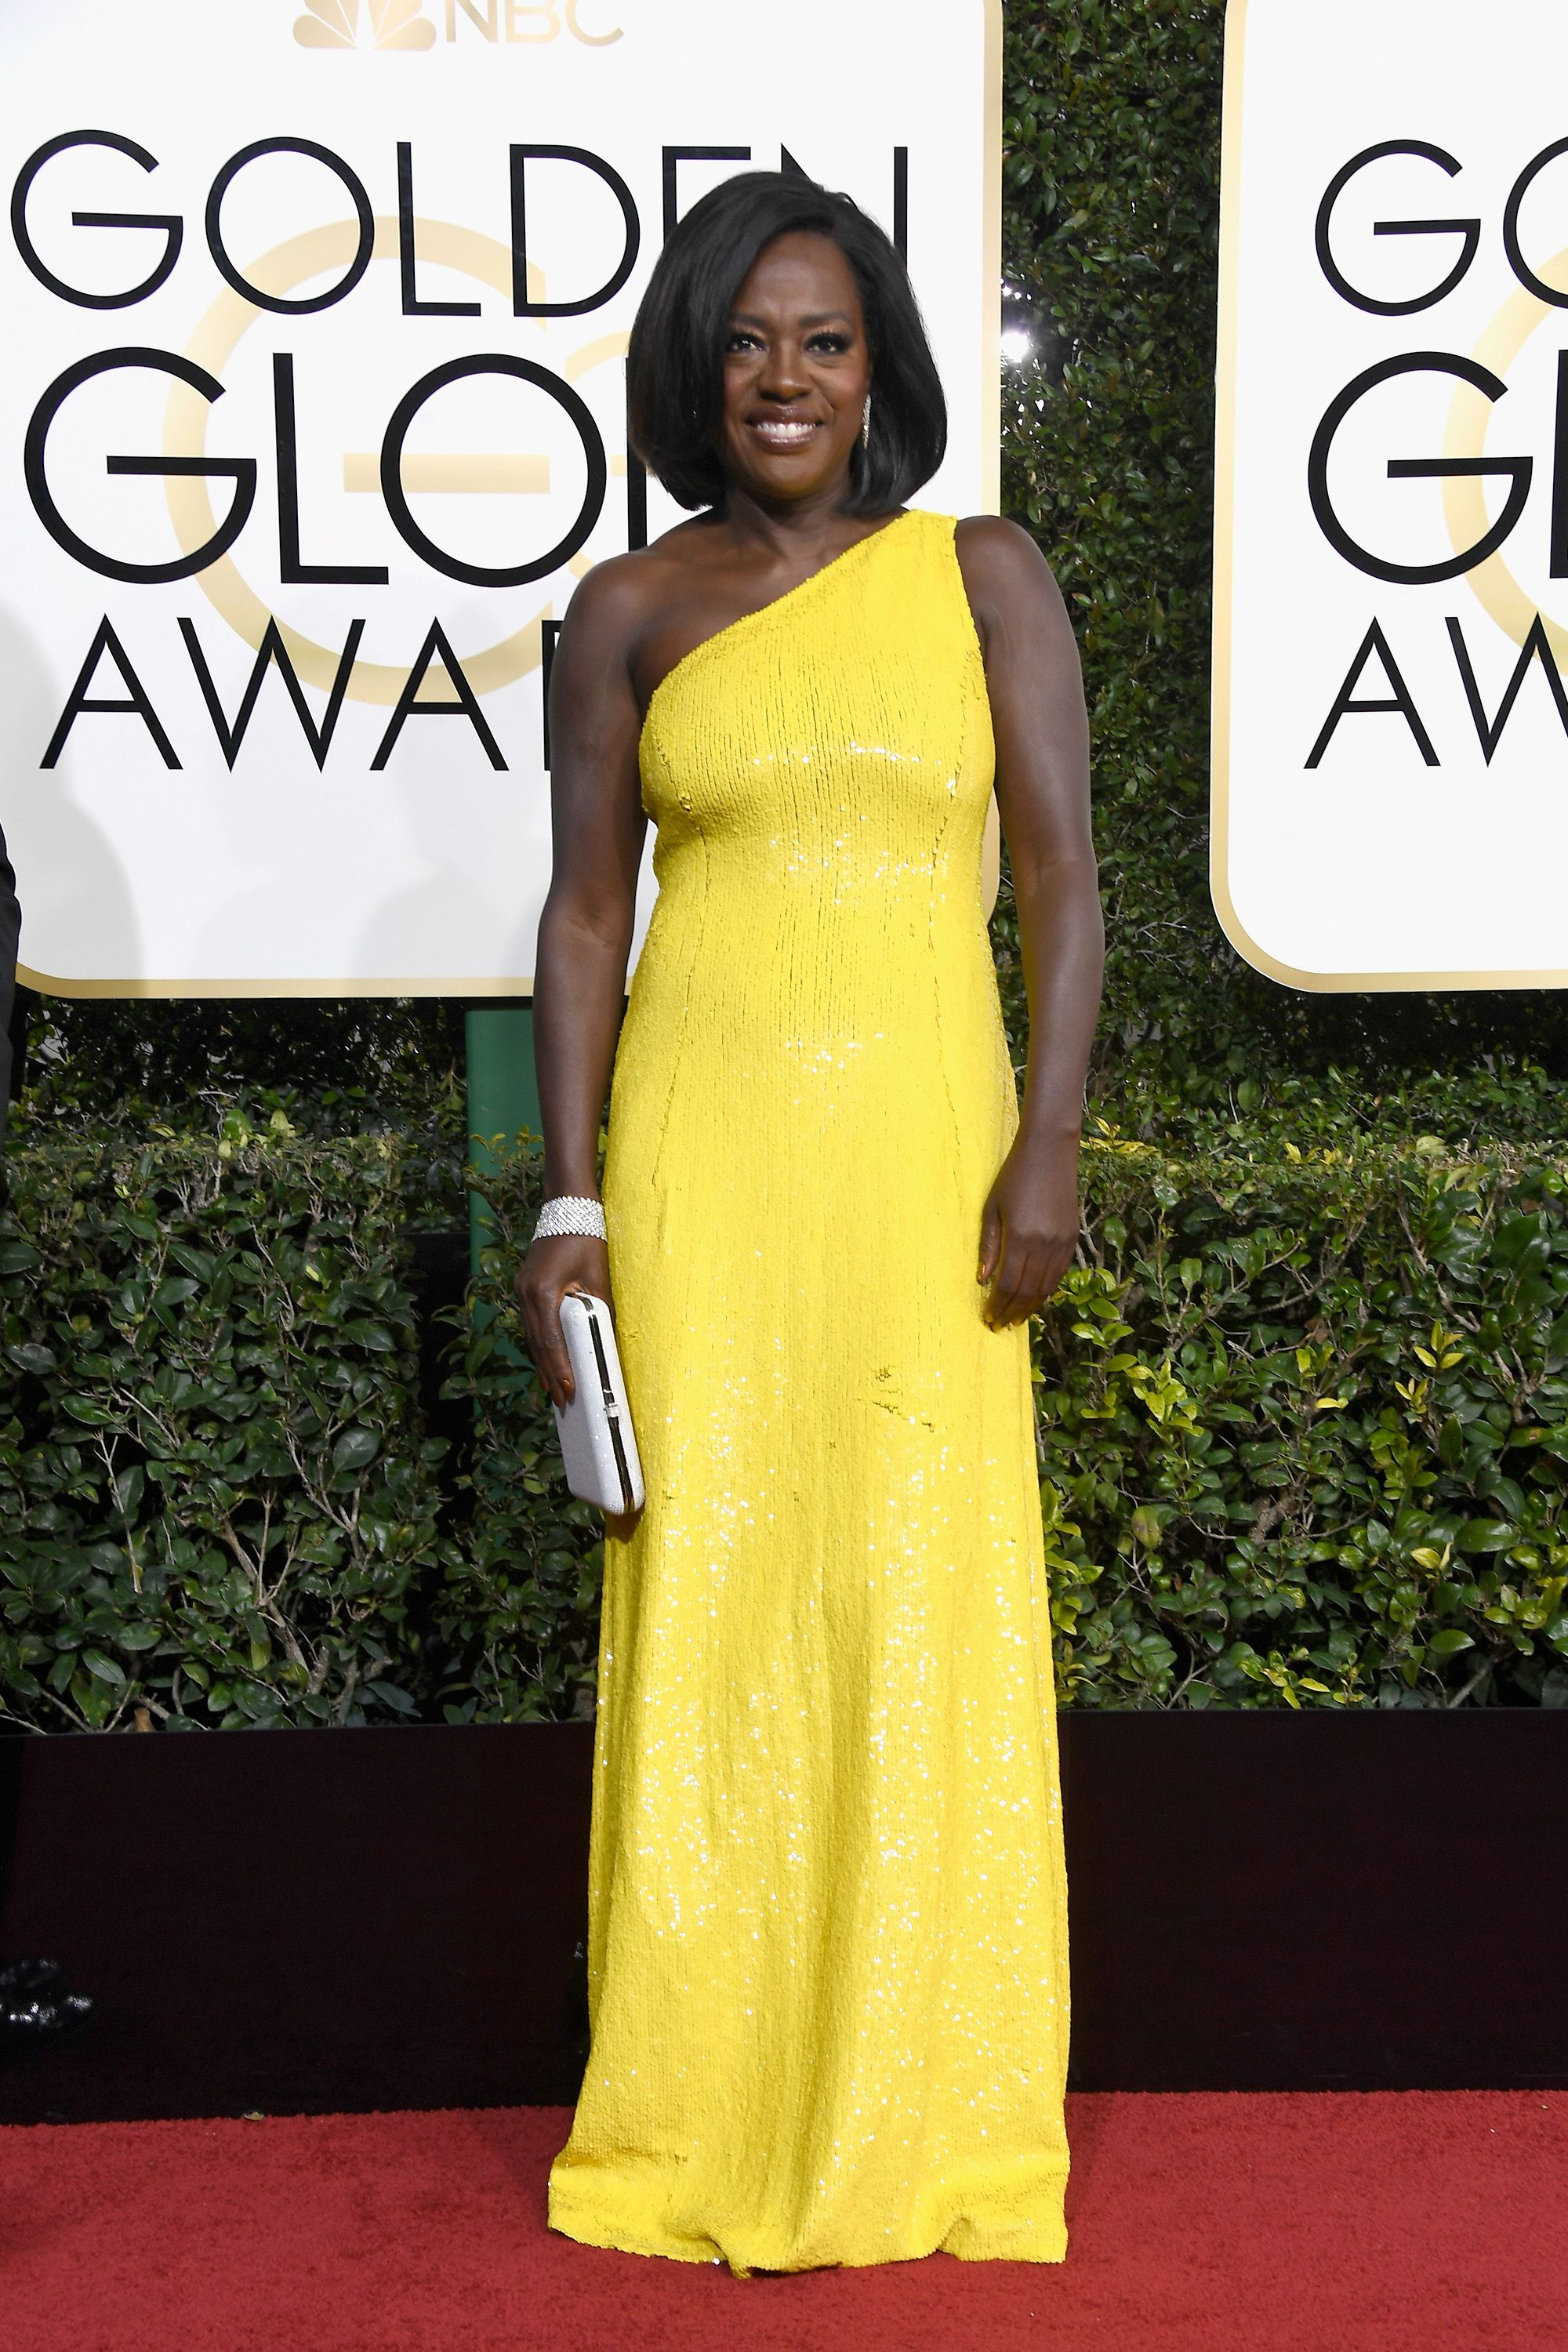 Pictures of the golden globes dresses